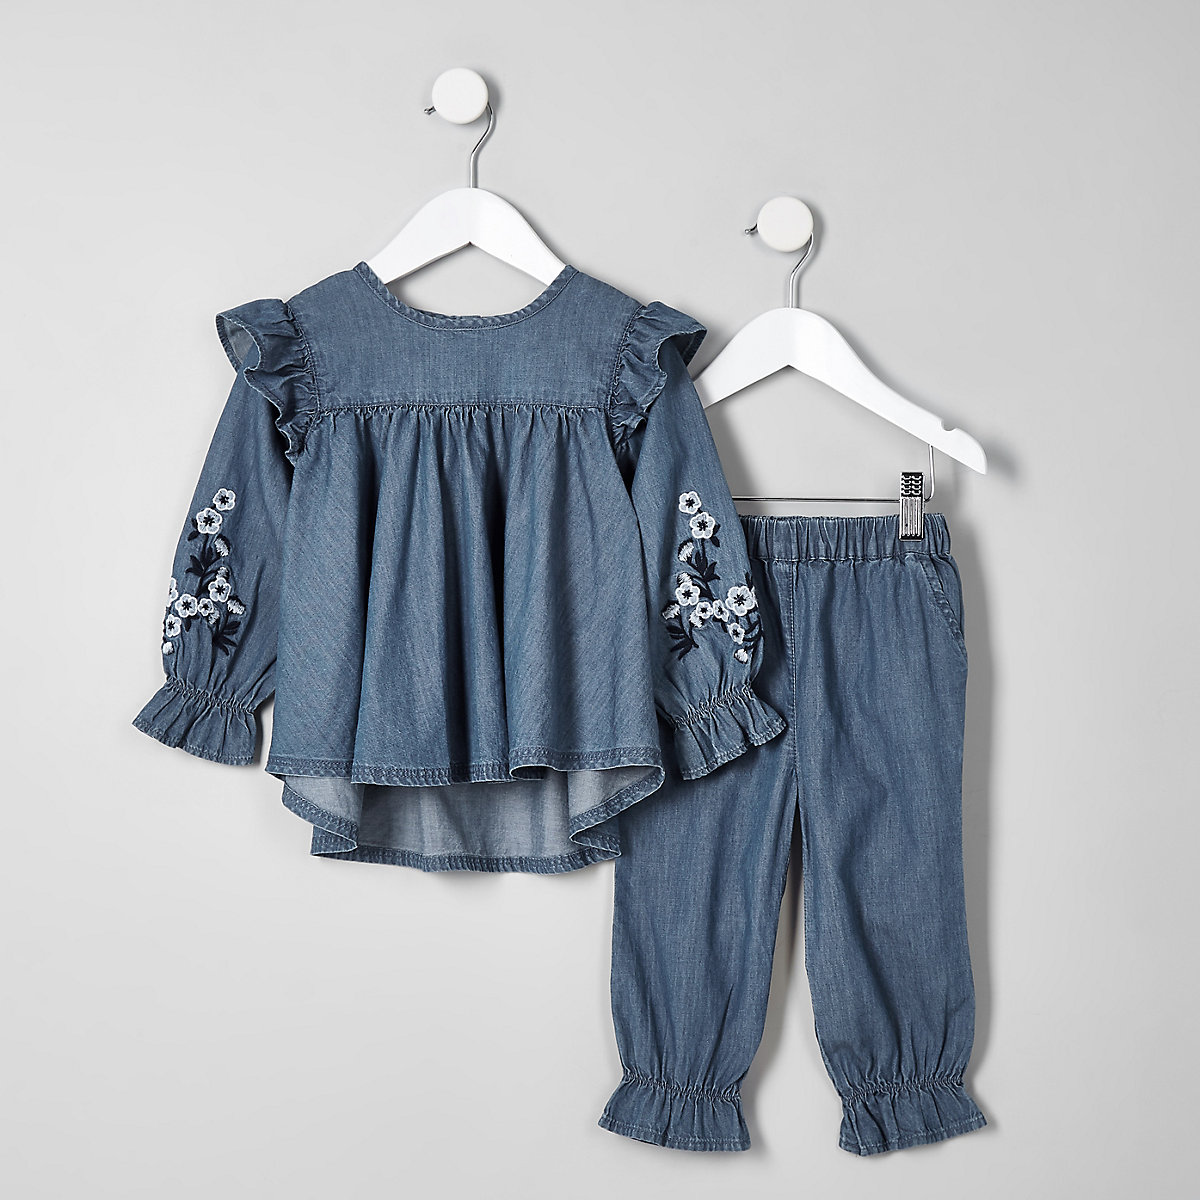 Mini girls blue denim swing top outfit